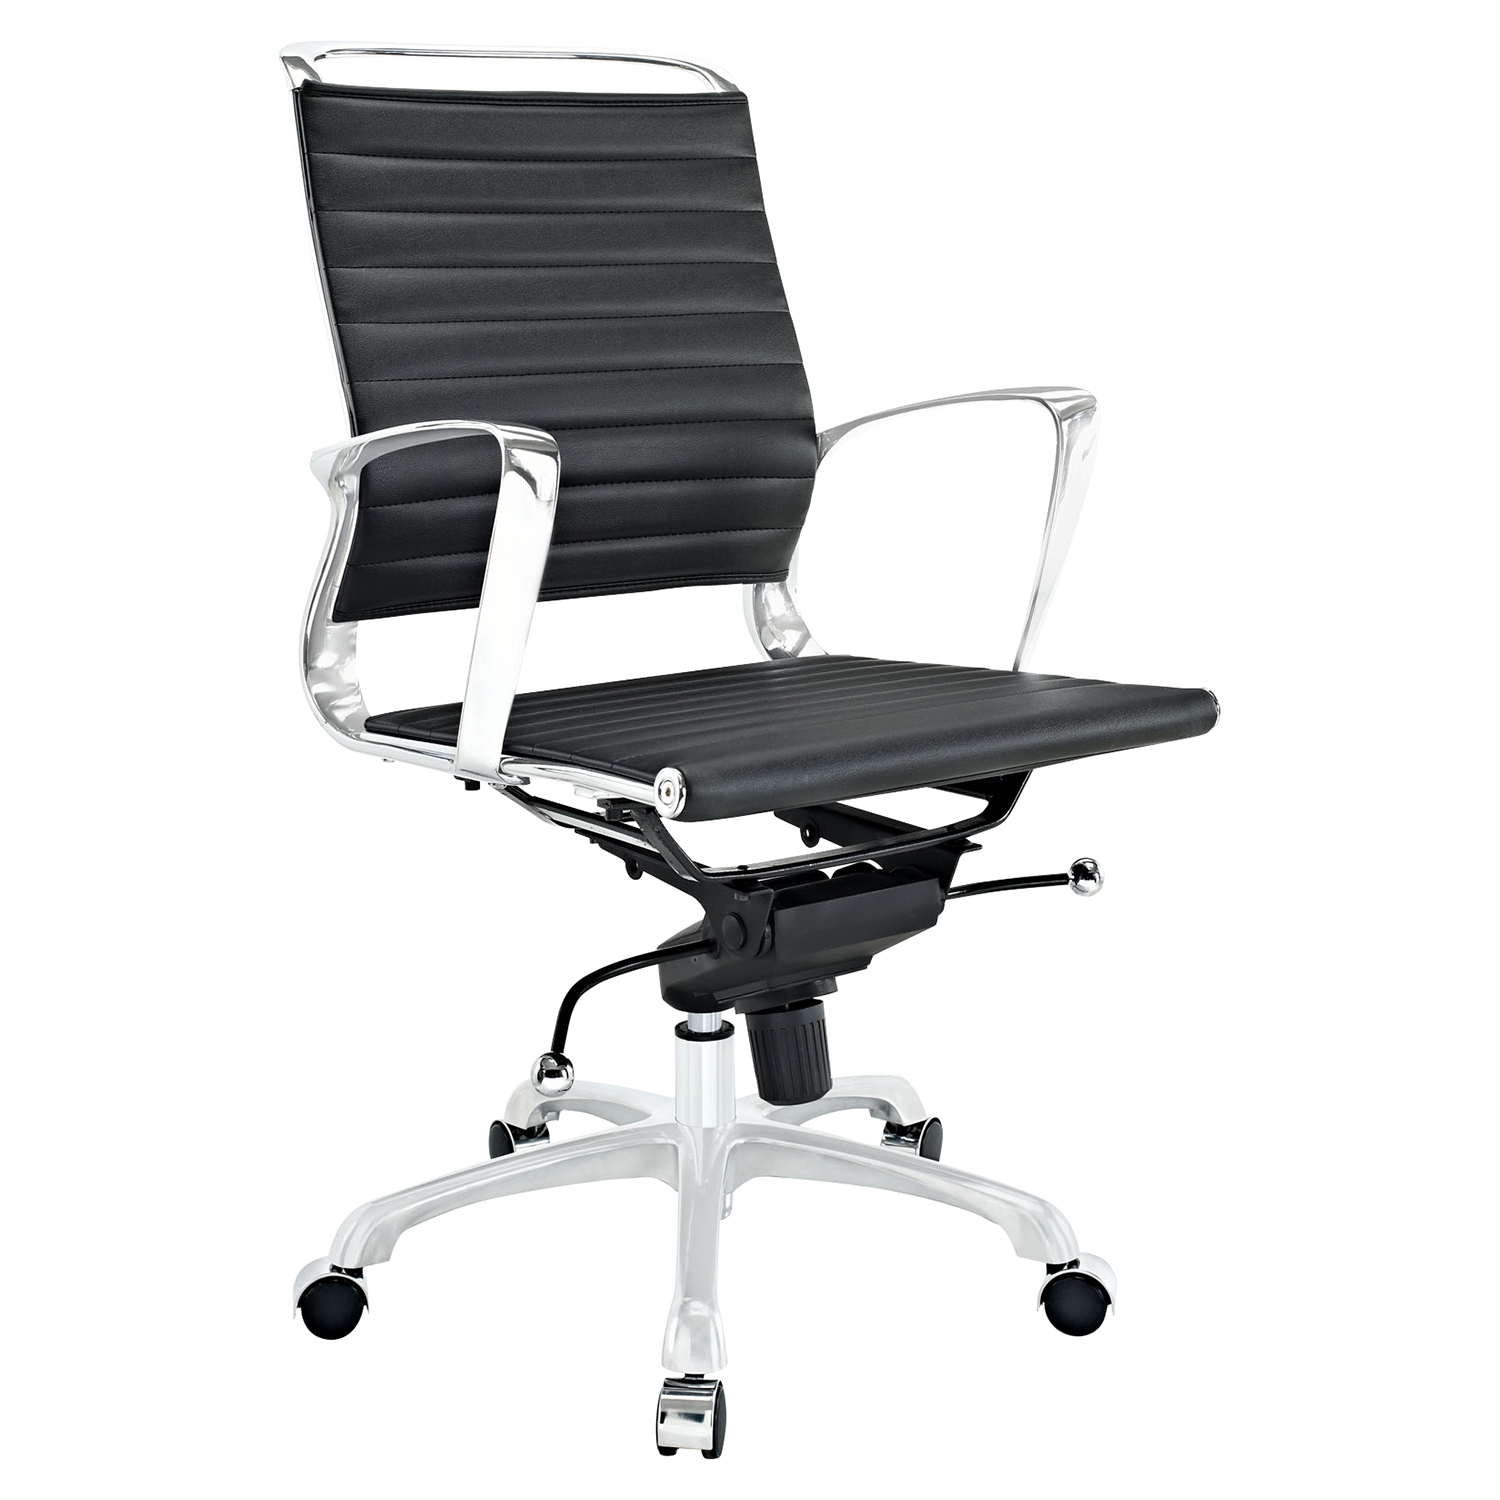 Tempo Mid Back Office Chair - Adjustable Height, Swivel, Armrest